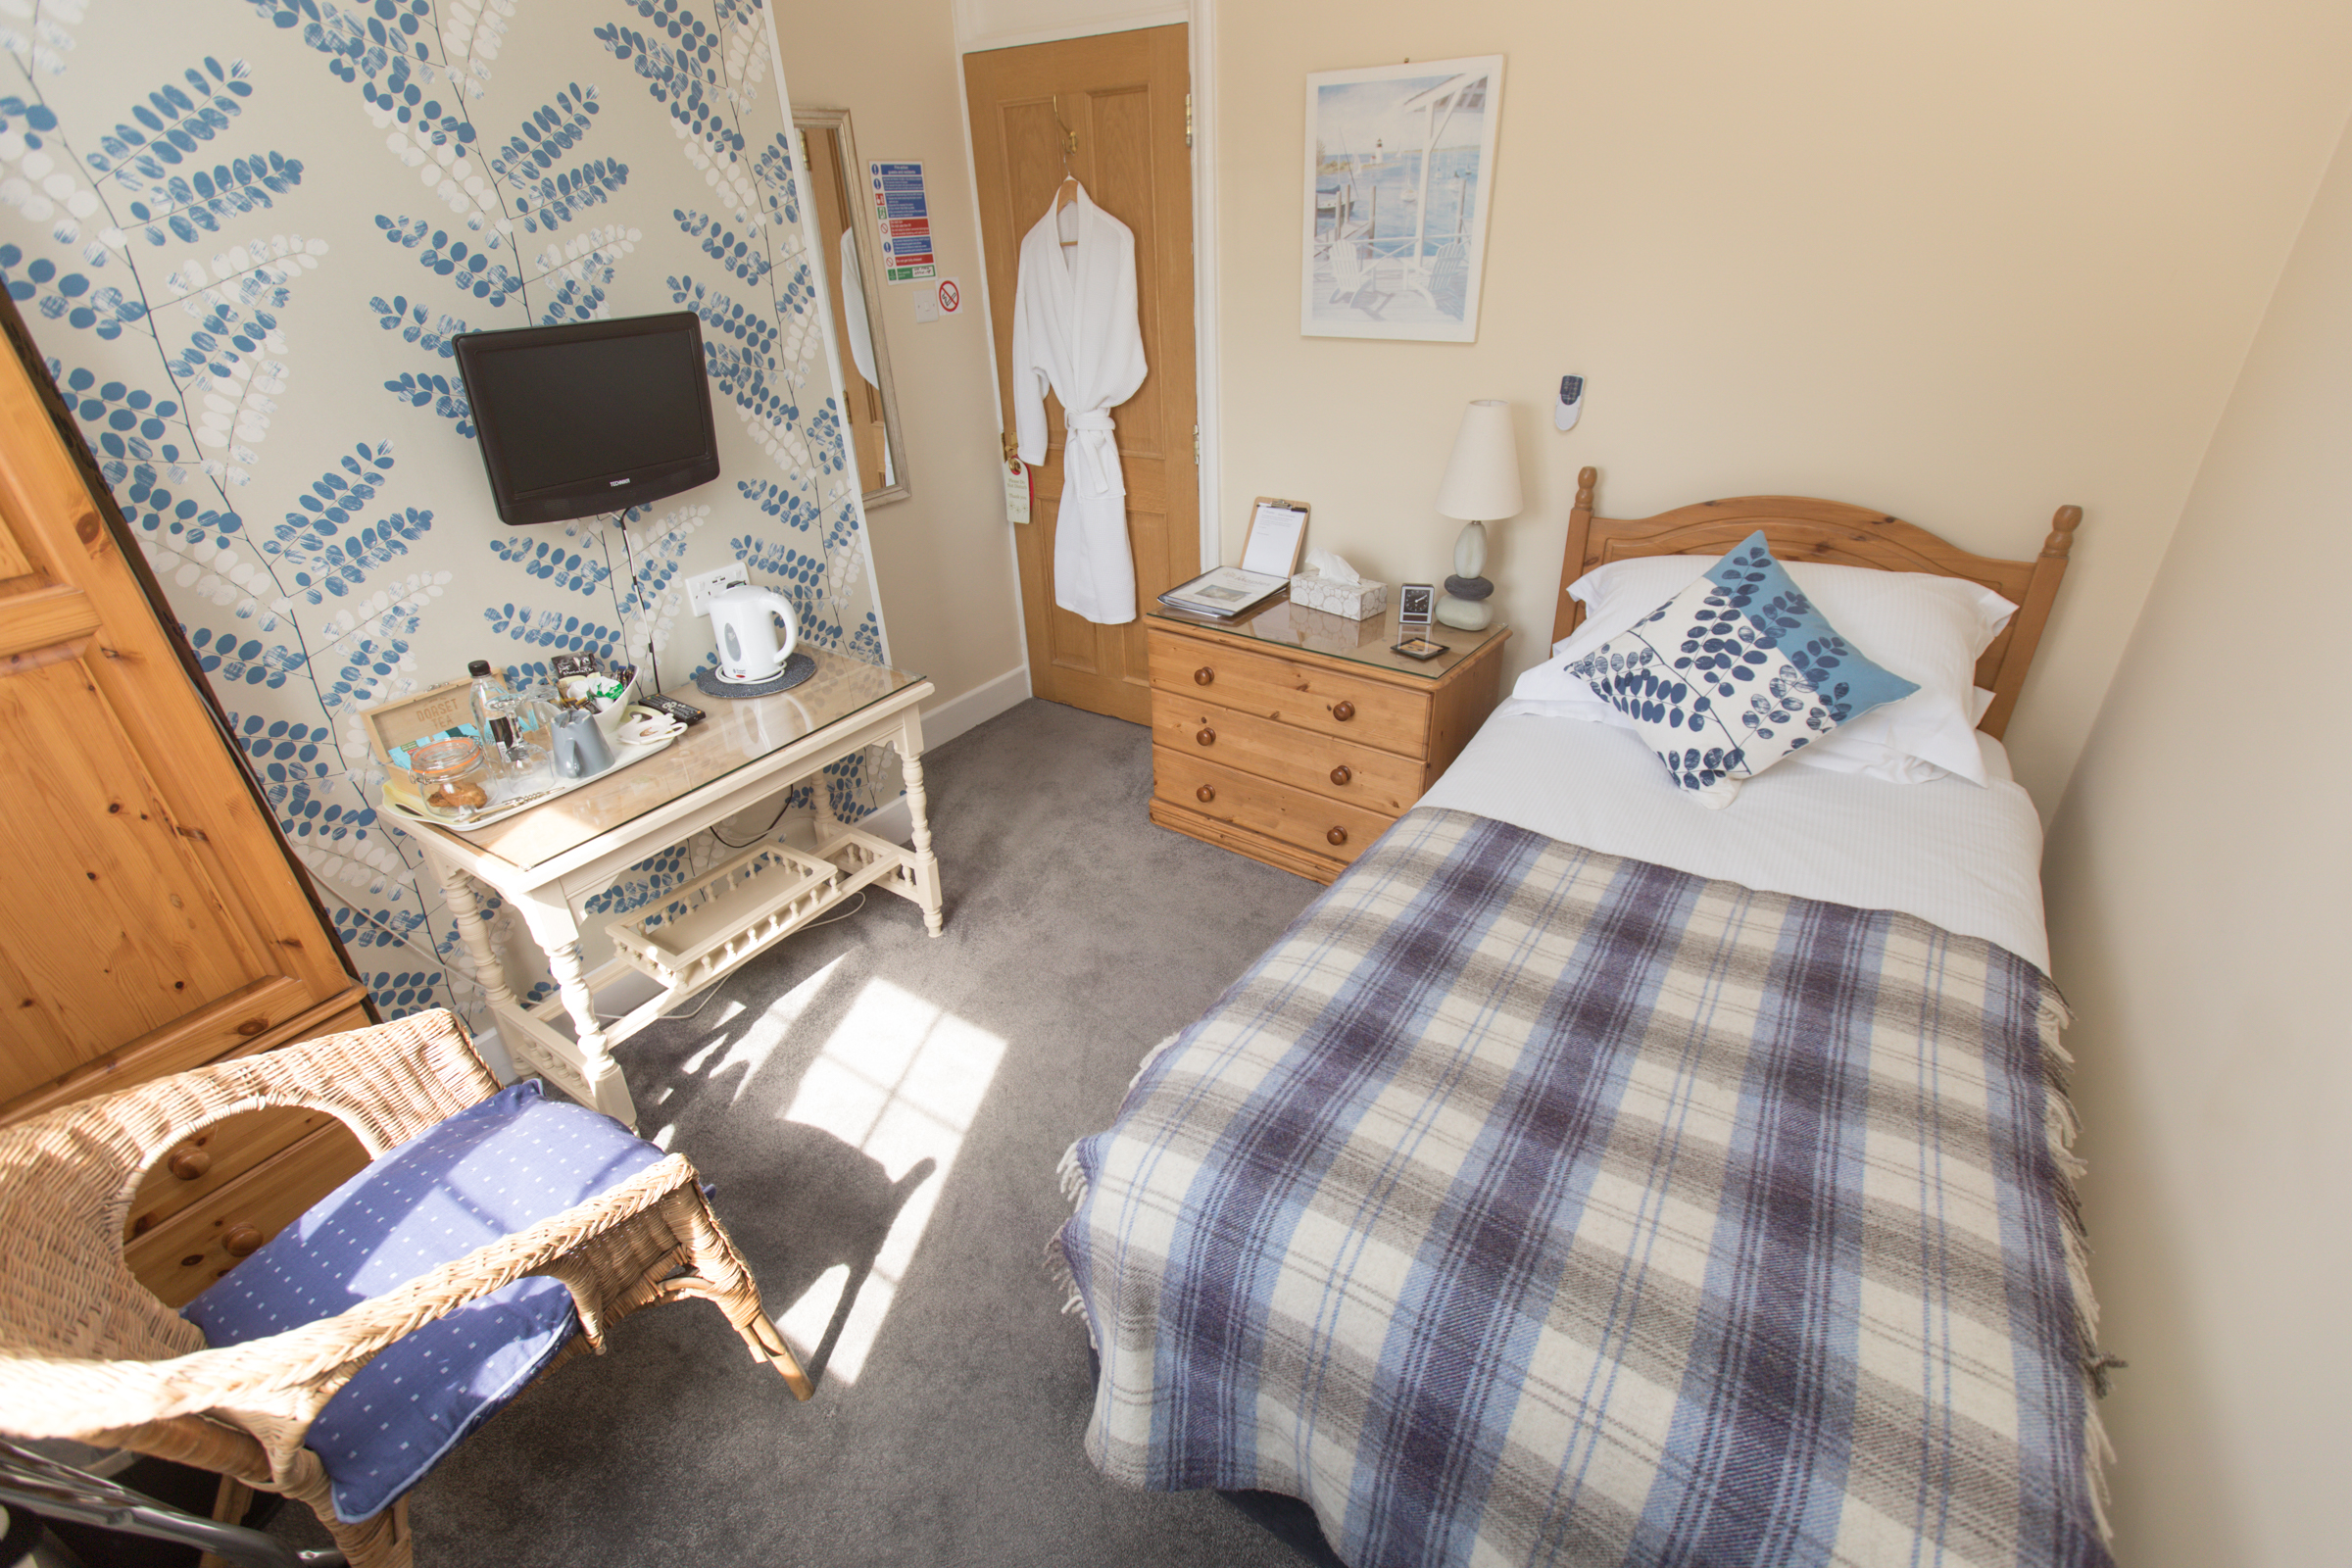 Single Bedroom Guest Lodge Hythe, Southampton - Room 2